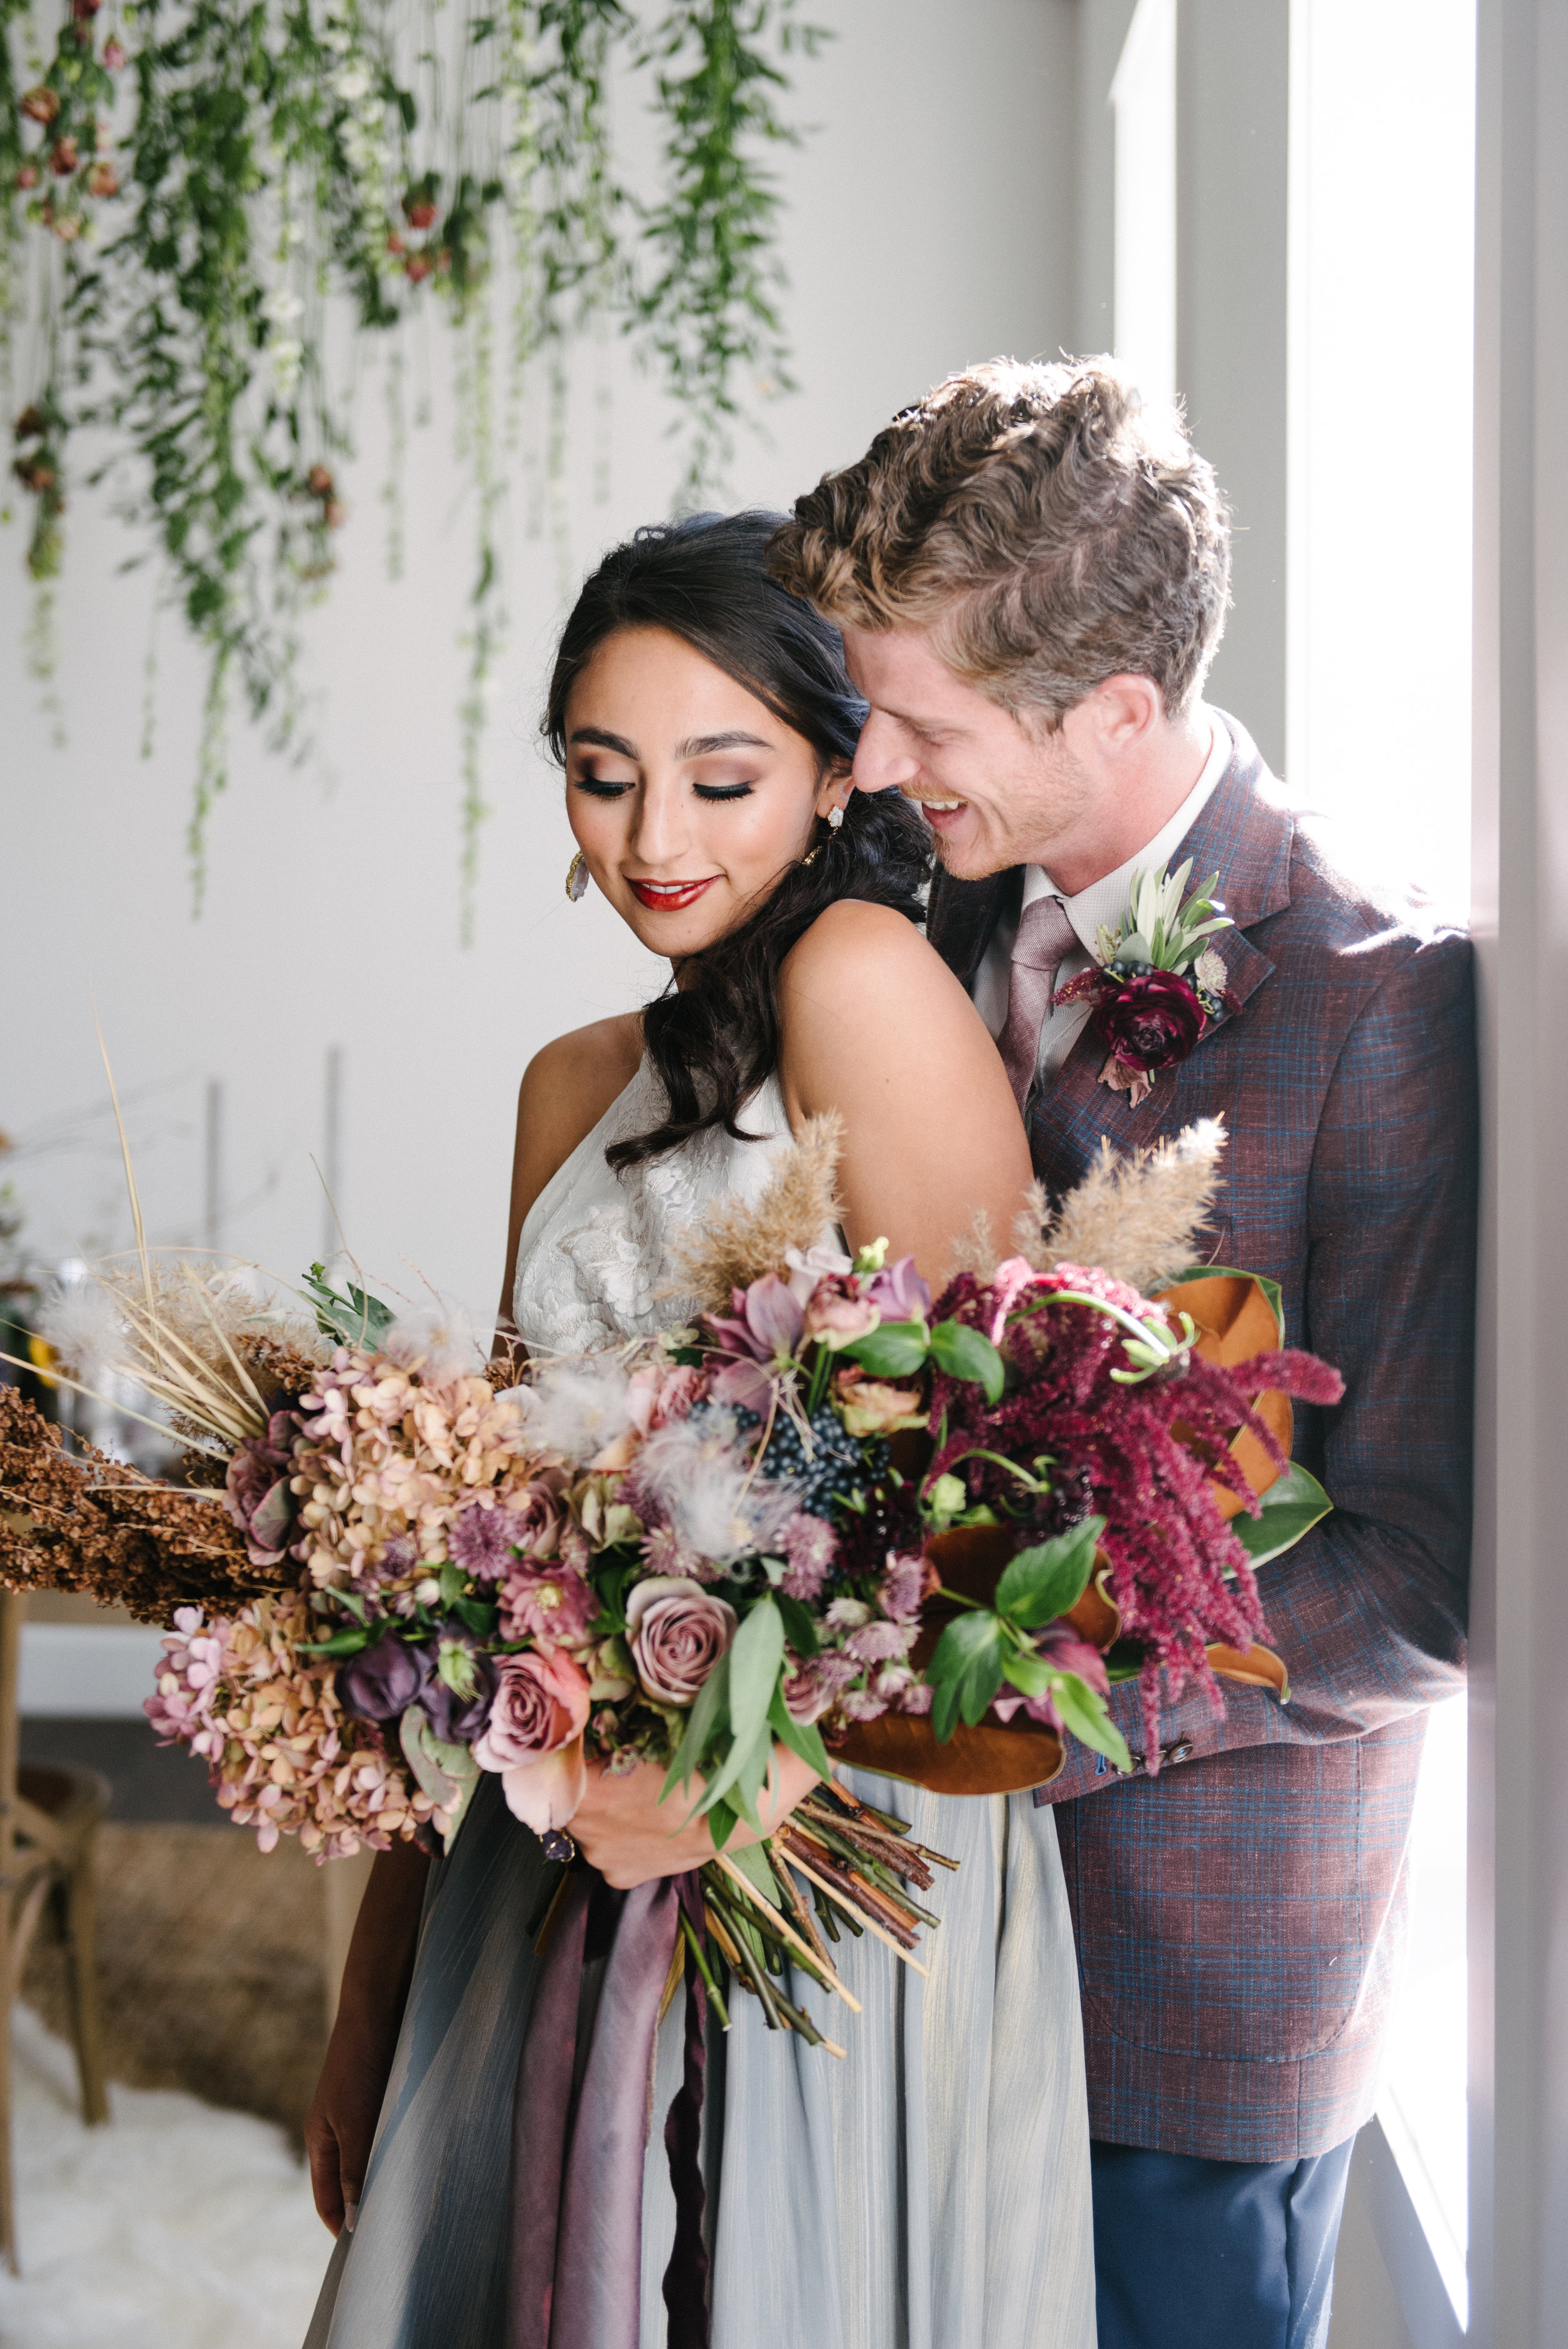 The Potted Pansy Utah Geode Wedding